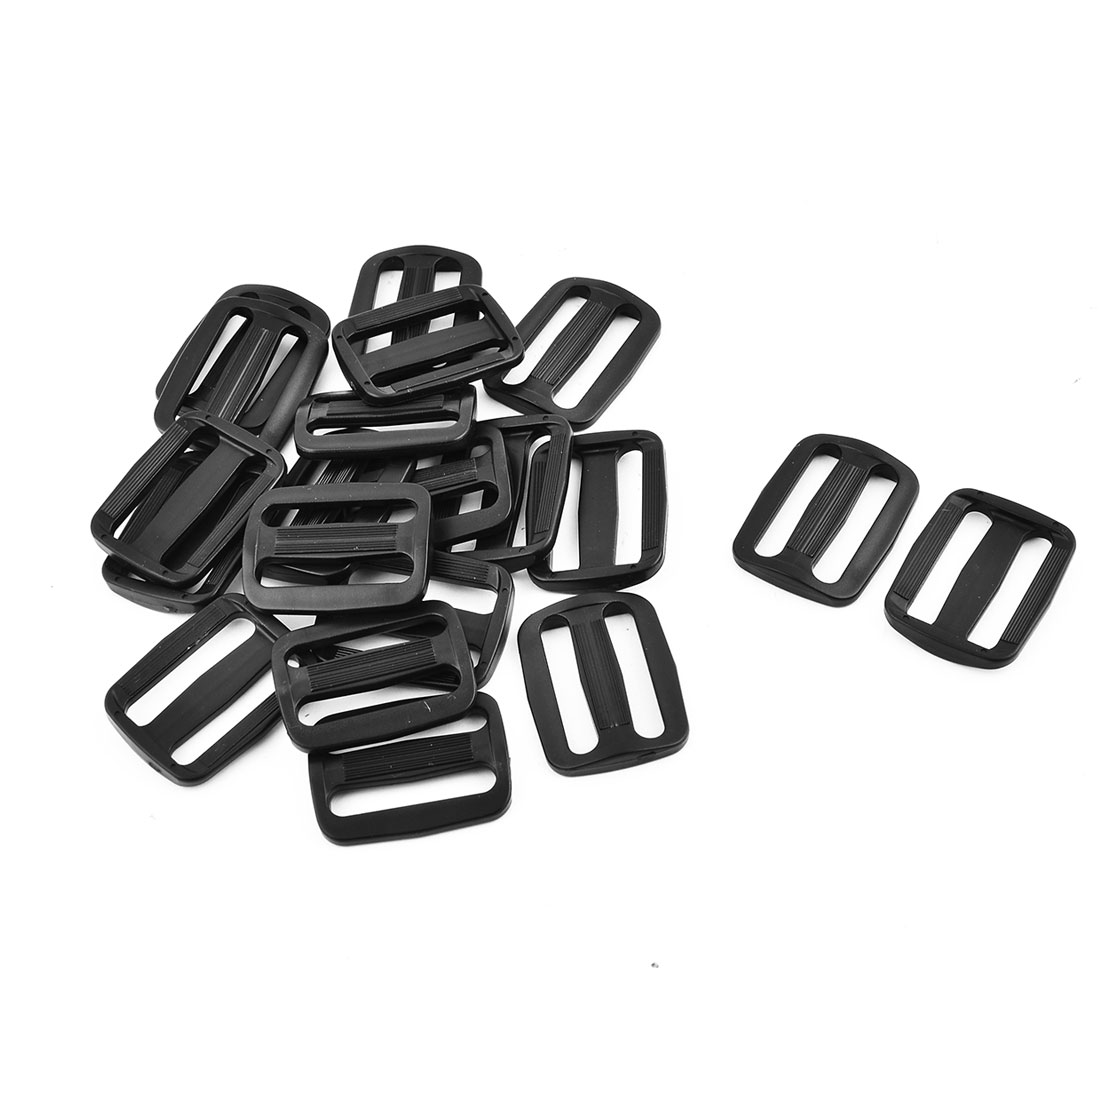 Plastic Adjustable Backpack Bag Belt Tri Glide Buckle 38mm Strap Width 20 Pcs